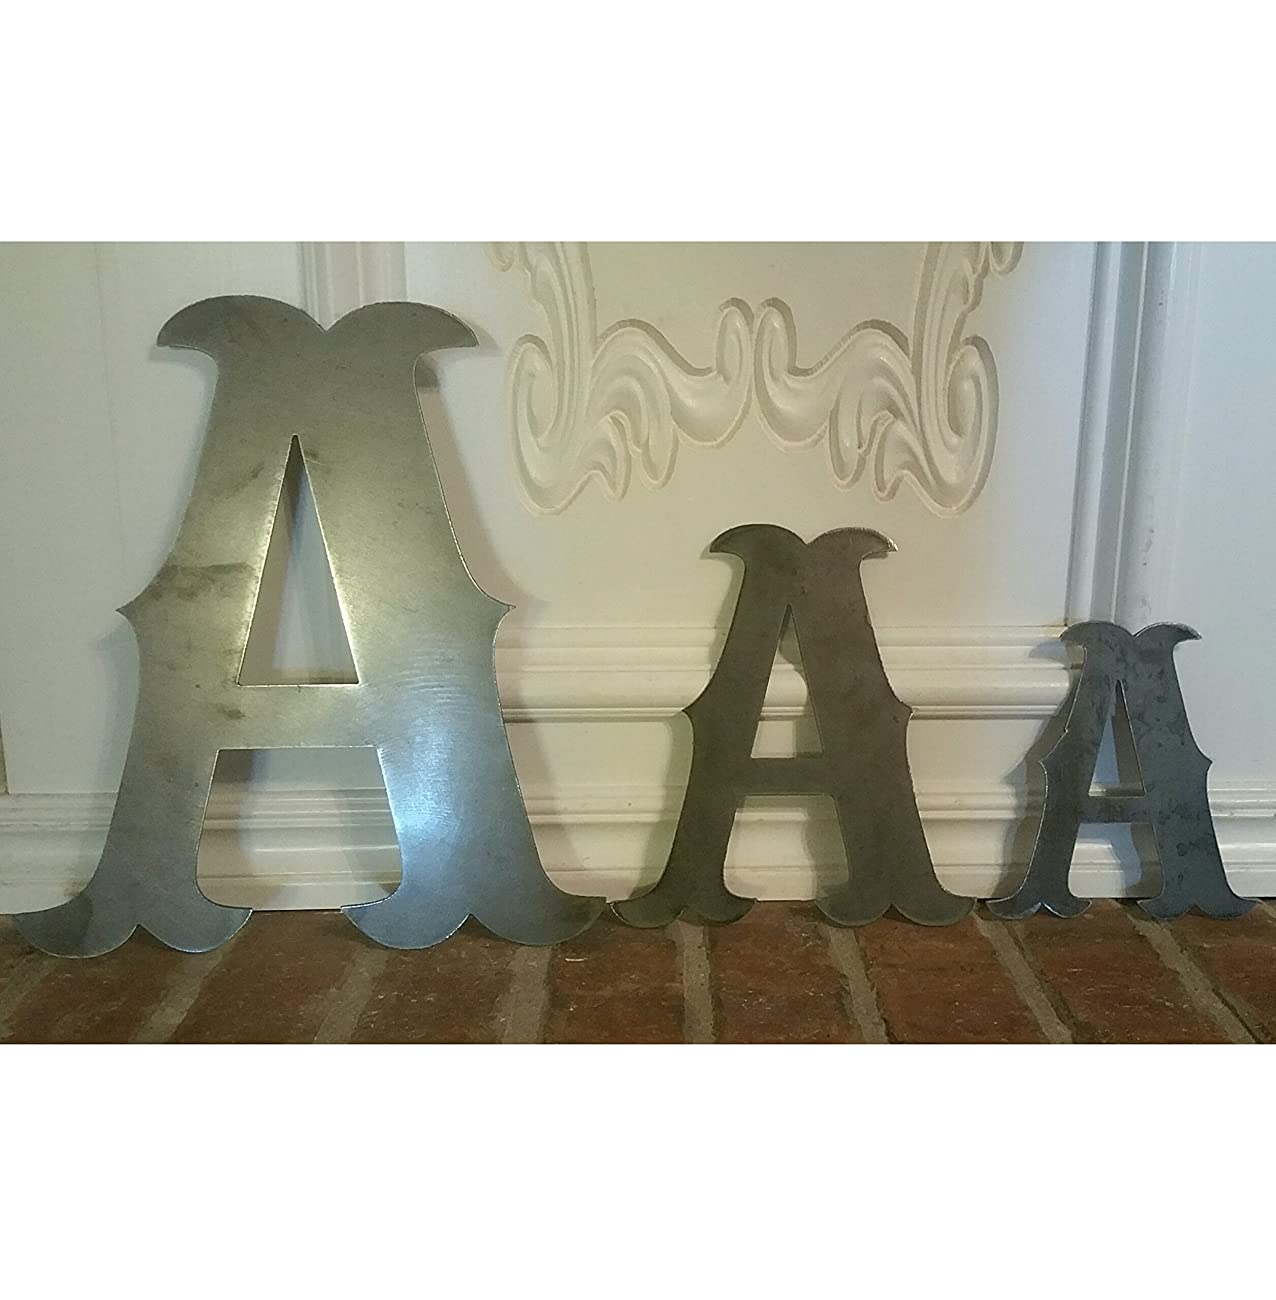 Individual Metal Letters 6in, 8in, 12in, and 20in	 0